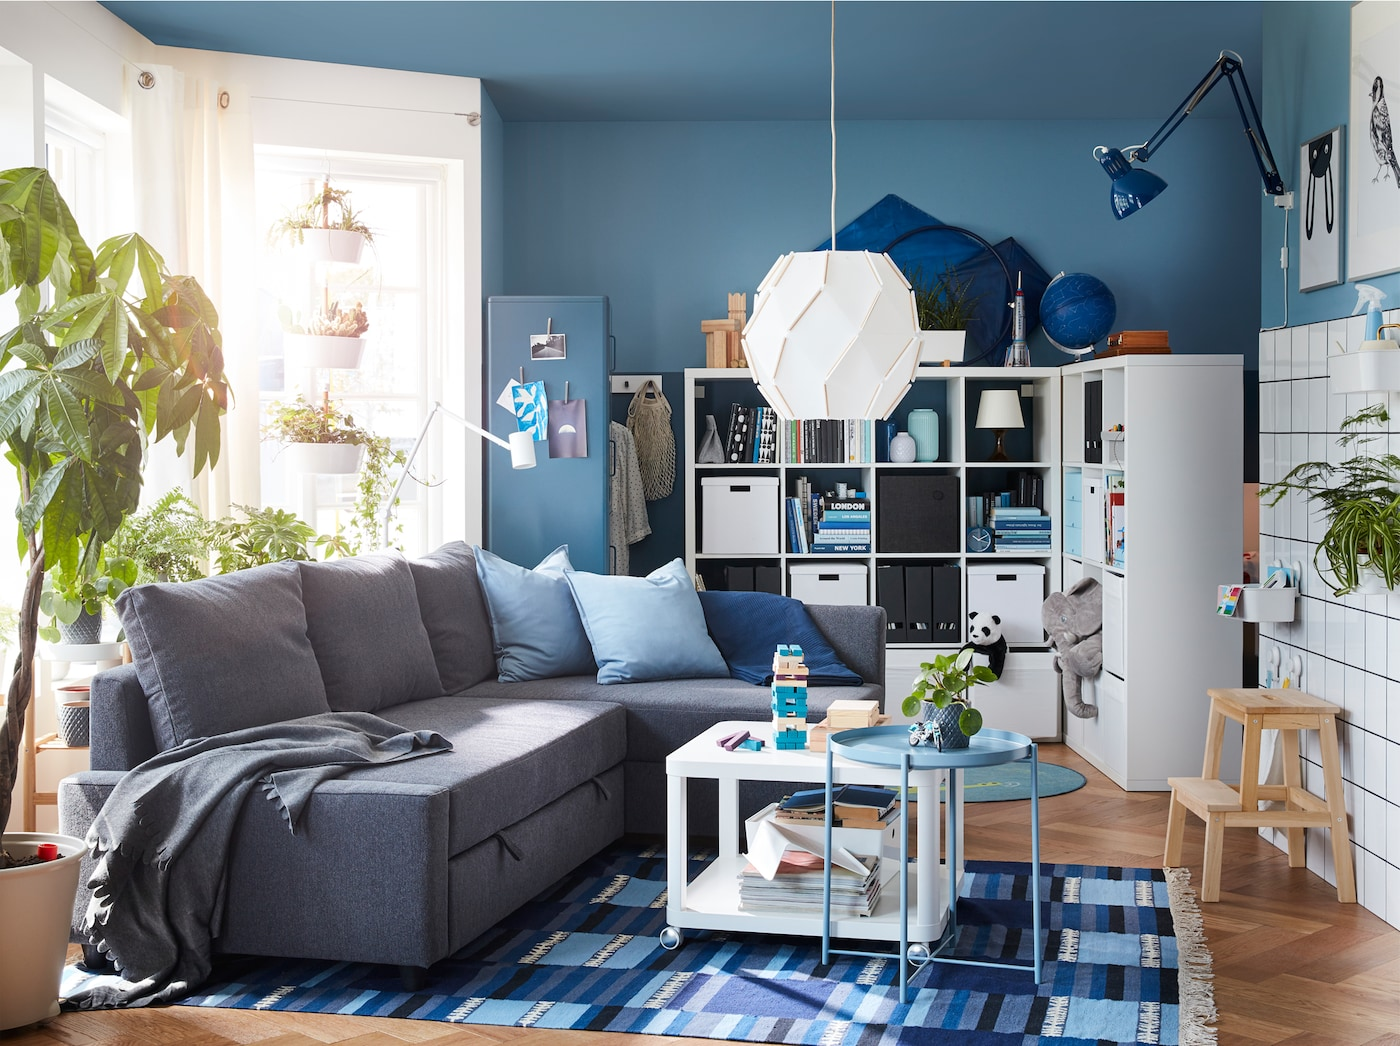 Living room with a dark grey corner sofa-bed, a blue-patterned rug and a freestanding shelving unit with space behind it.